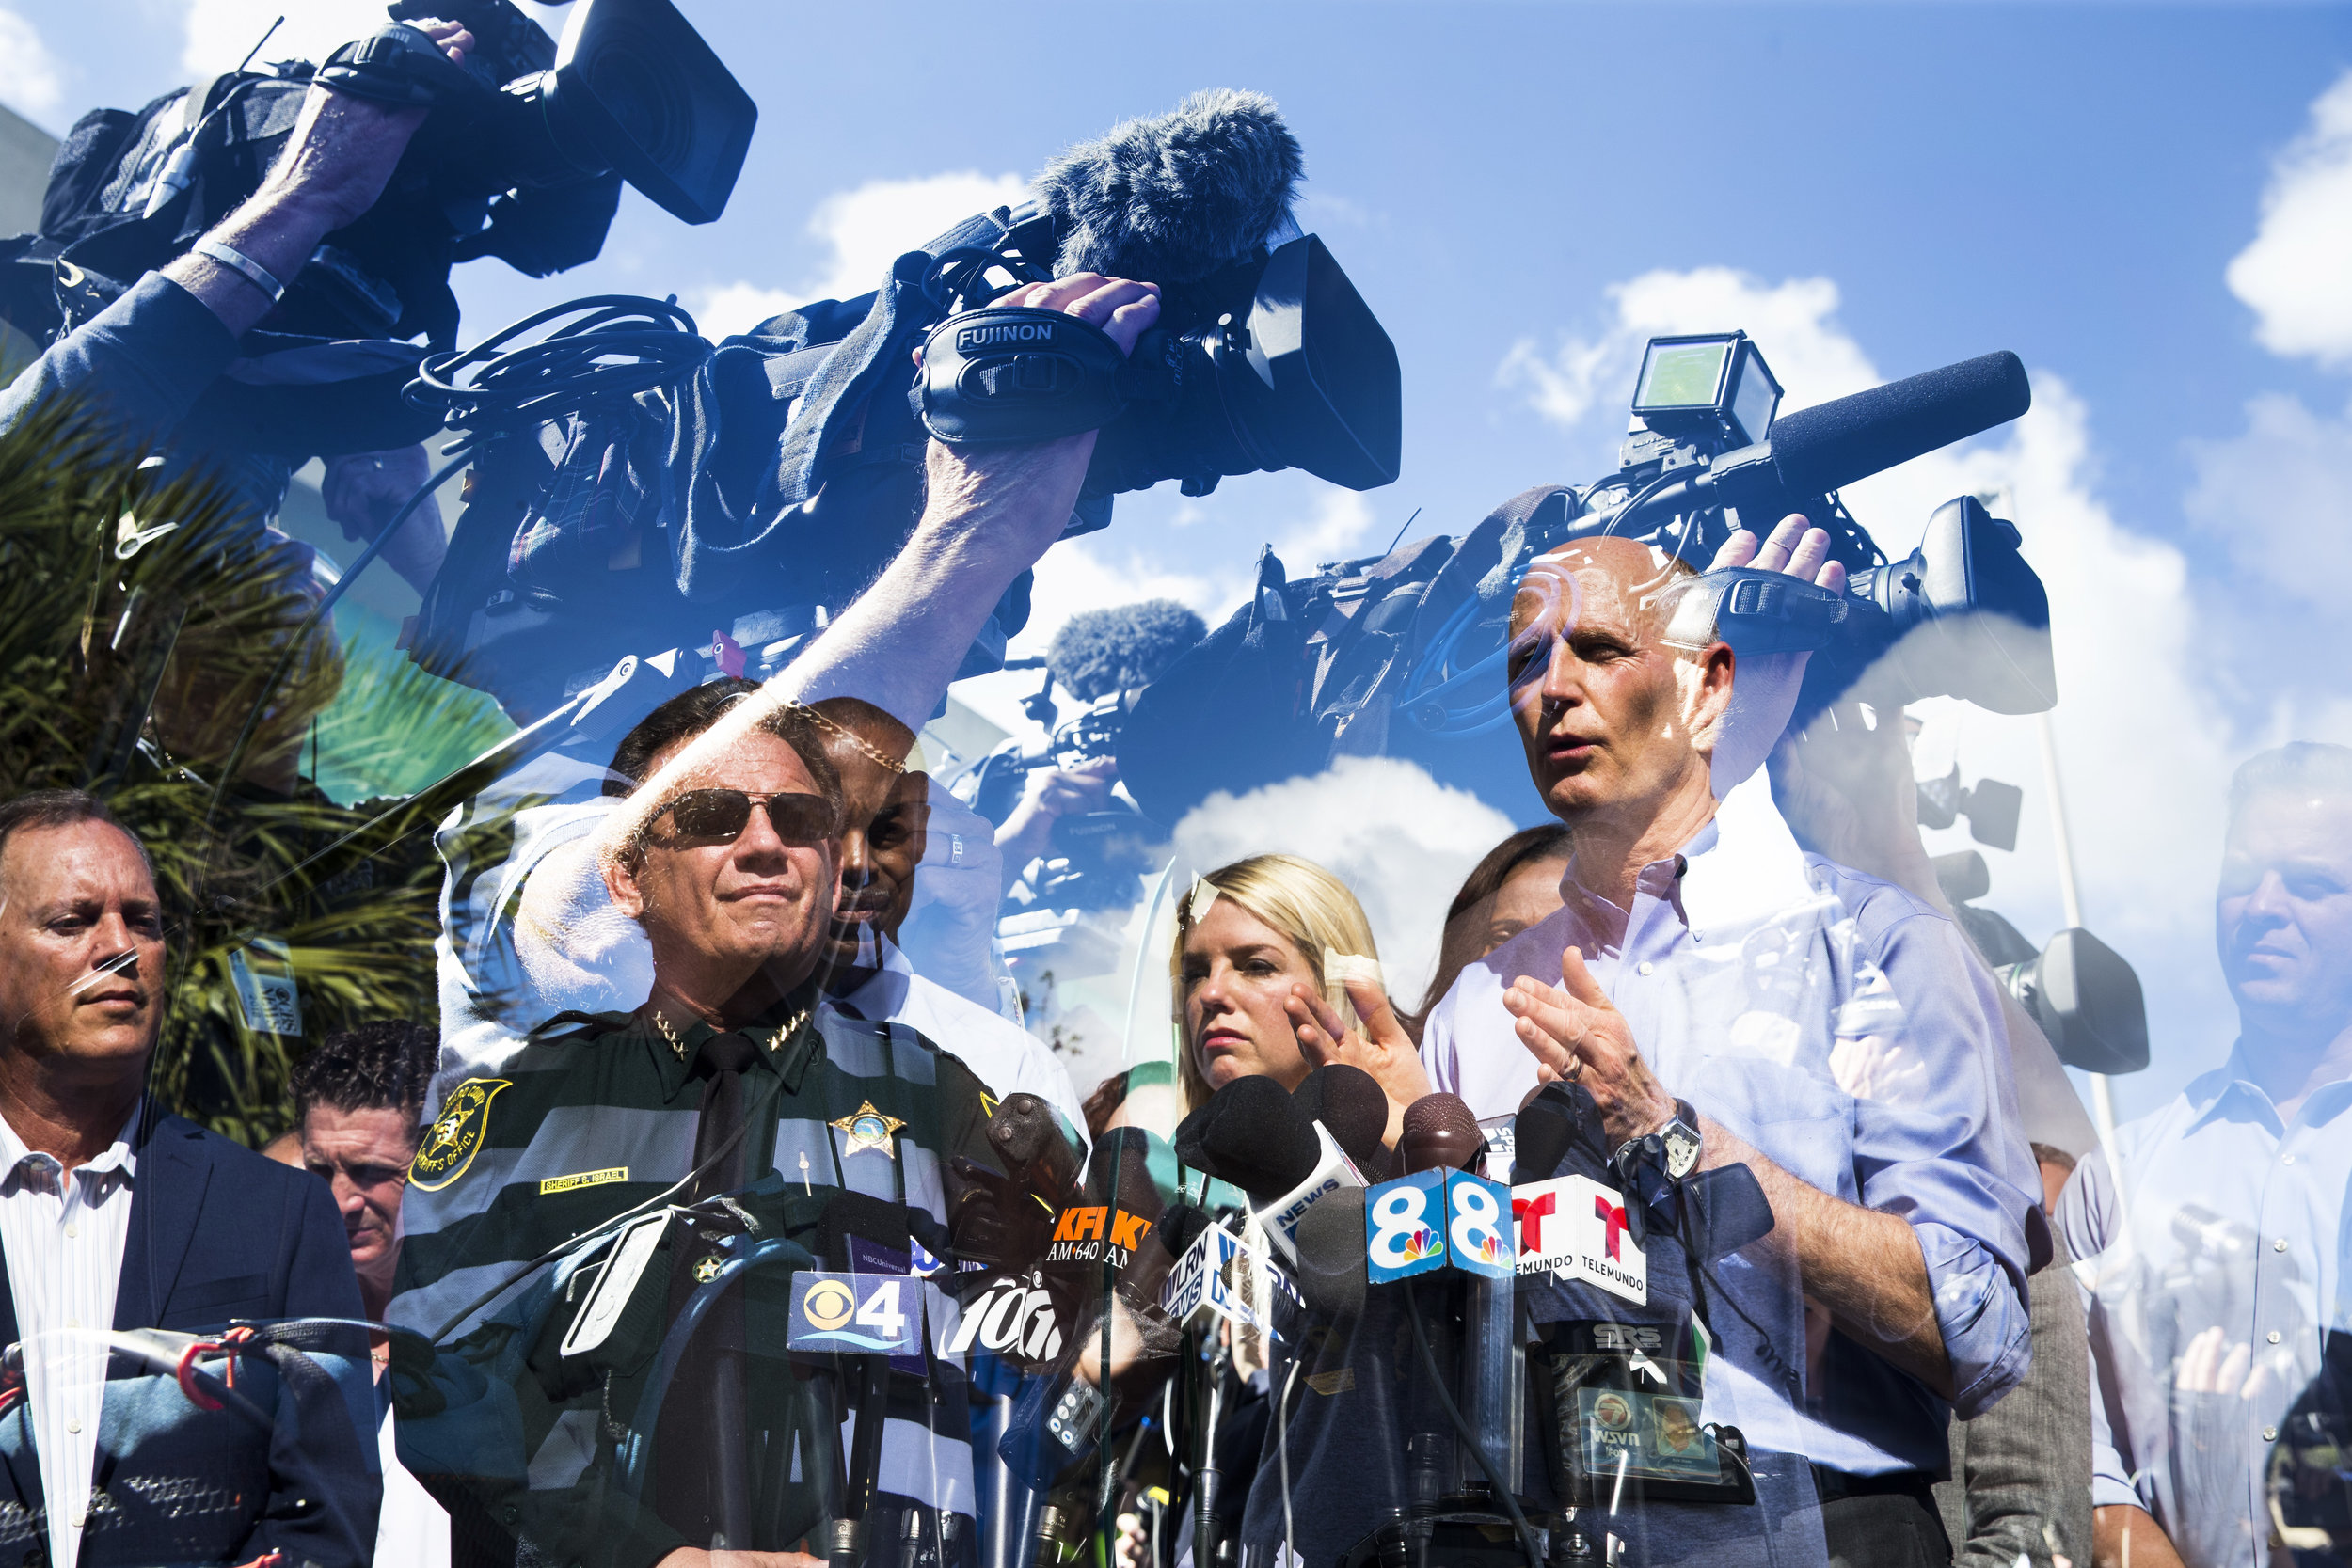 In this double exposure photo, Gov. Rick Scott addresses the press during the first media briefing on Thursday, Feb. 15, 2018 outside of Marjory Stoneman Douglas High School in Parkland, Fla., where 17 people died and several others were injured after Wednesday's mass shooting.